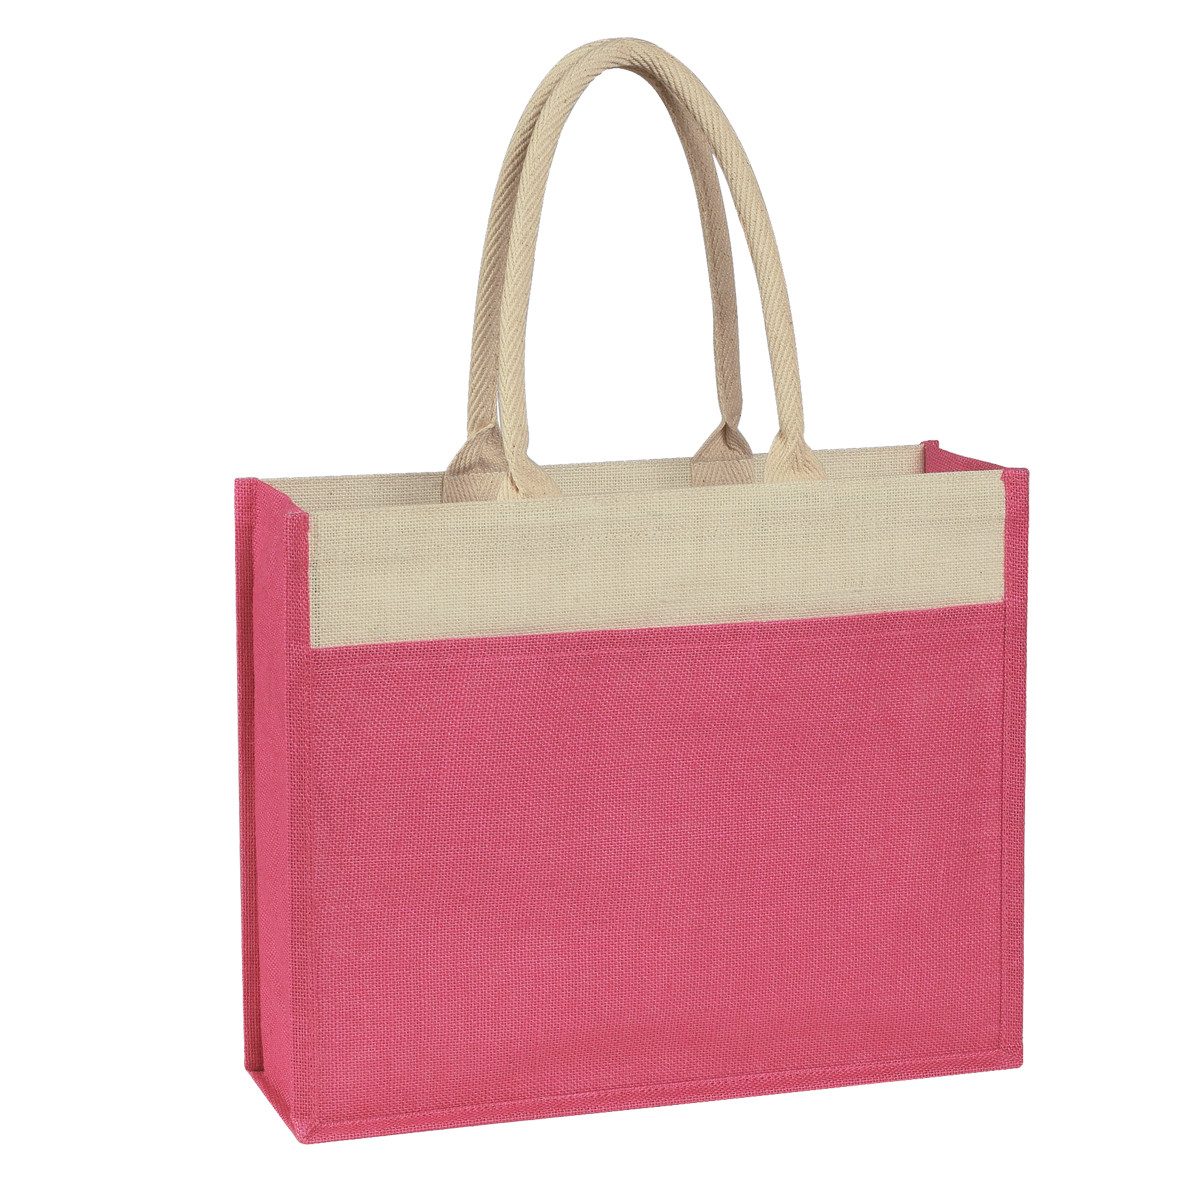 100% cotton canvas oversized grocery/multipurpose tote bag 5